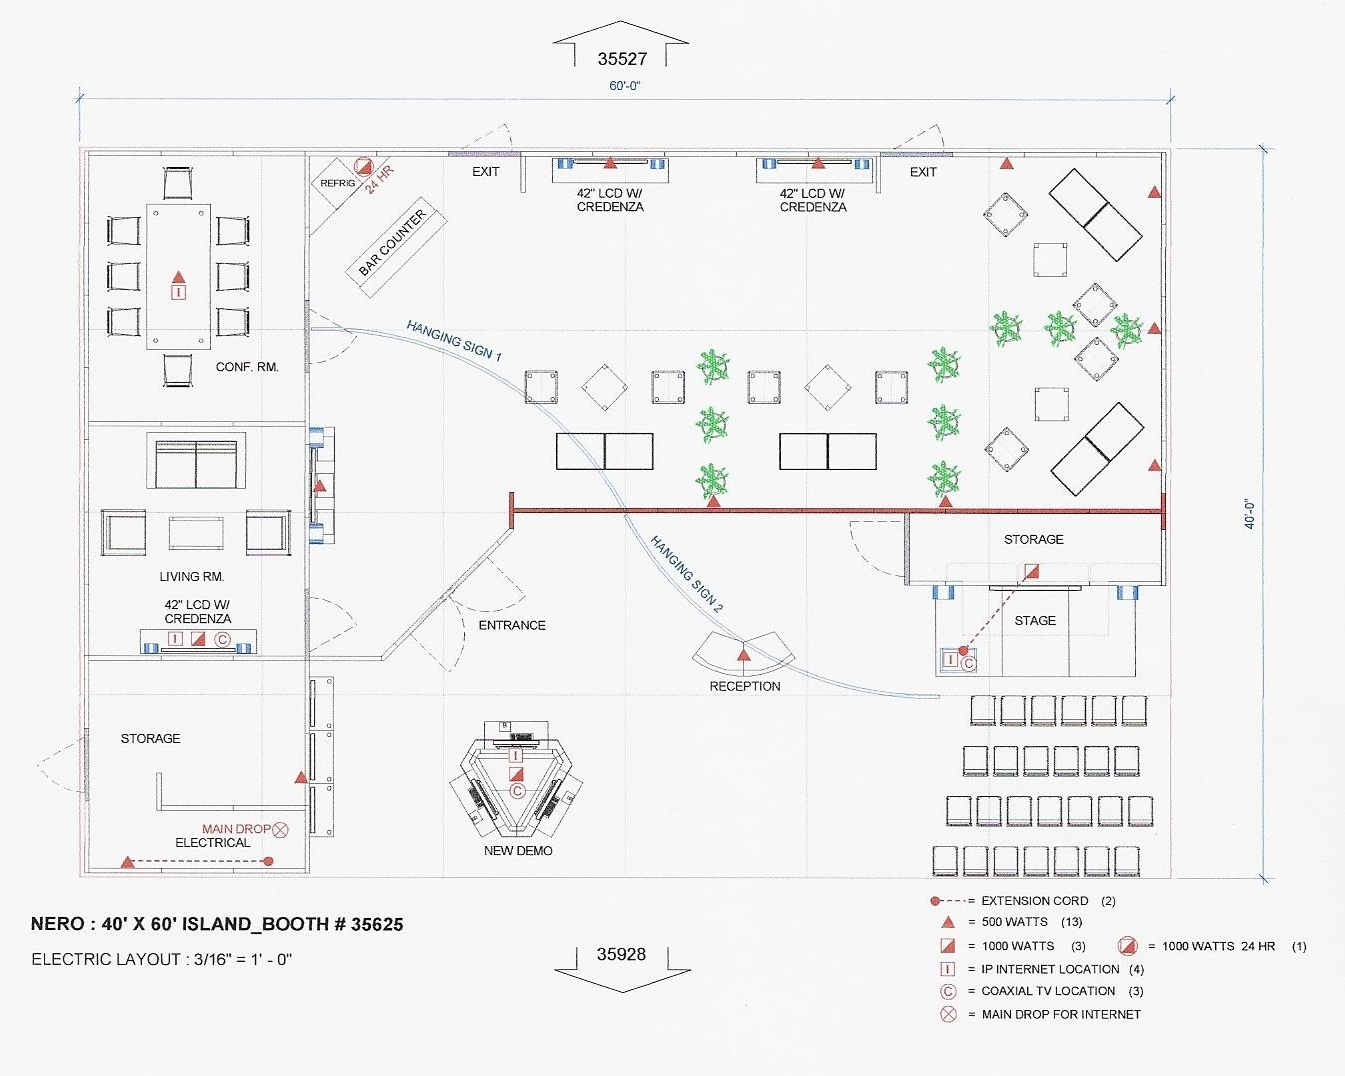 Trade show booth schematic